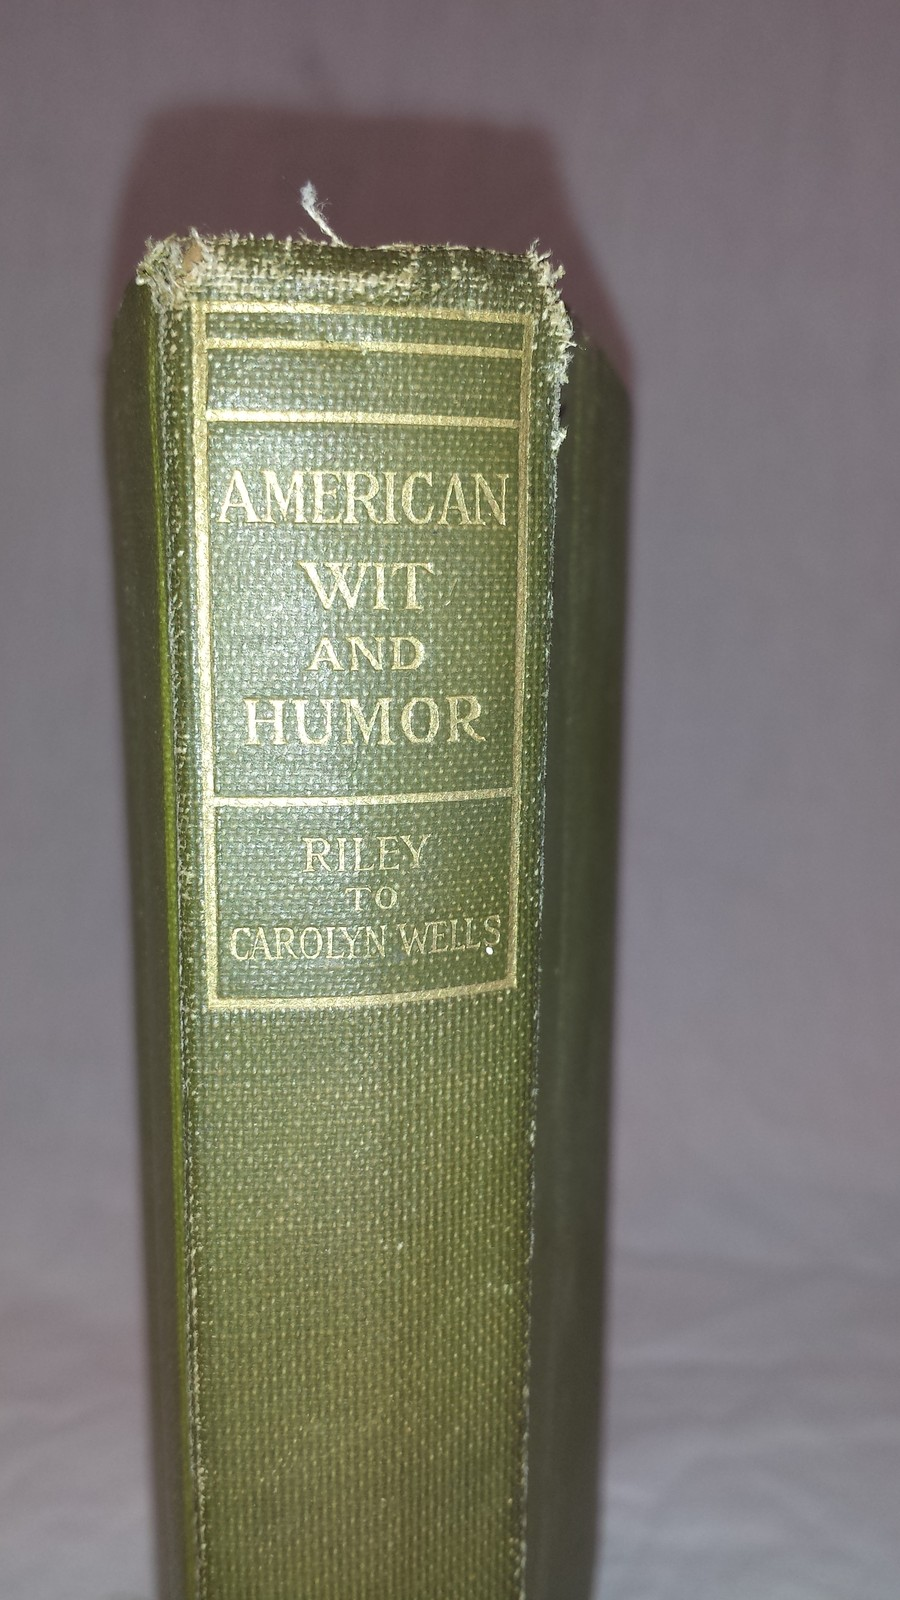 American Wit and Humor Book 1907 Riley to Carolyn Wells image 2